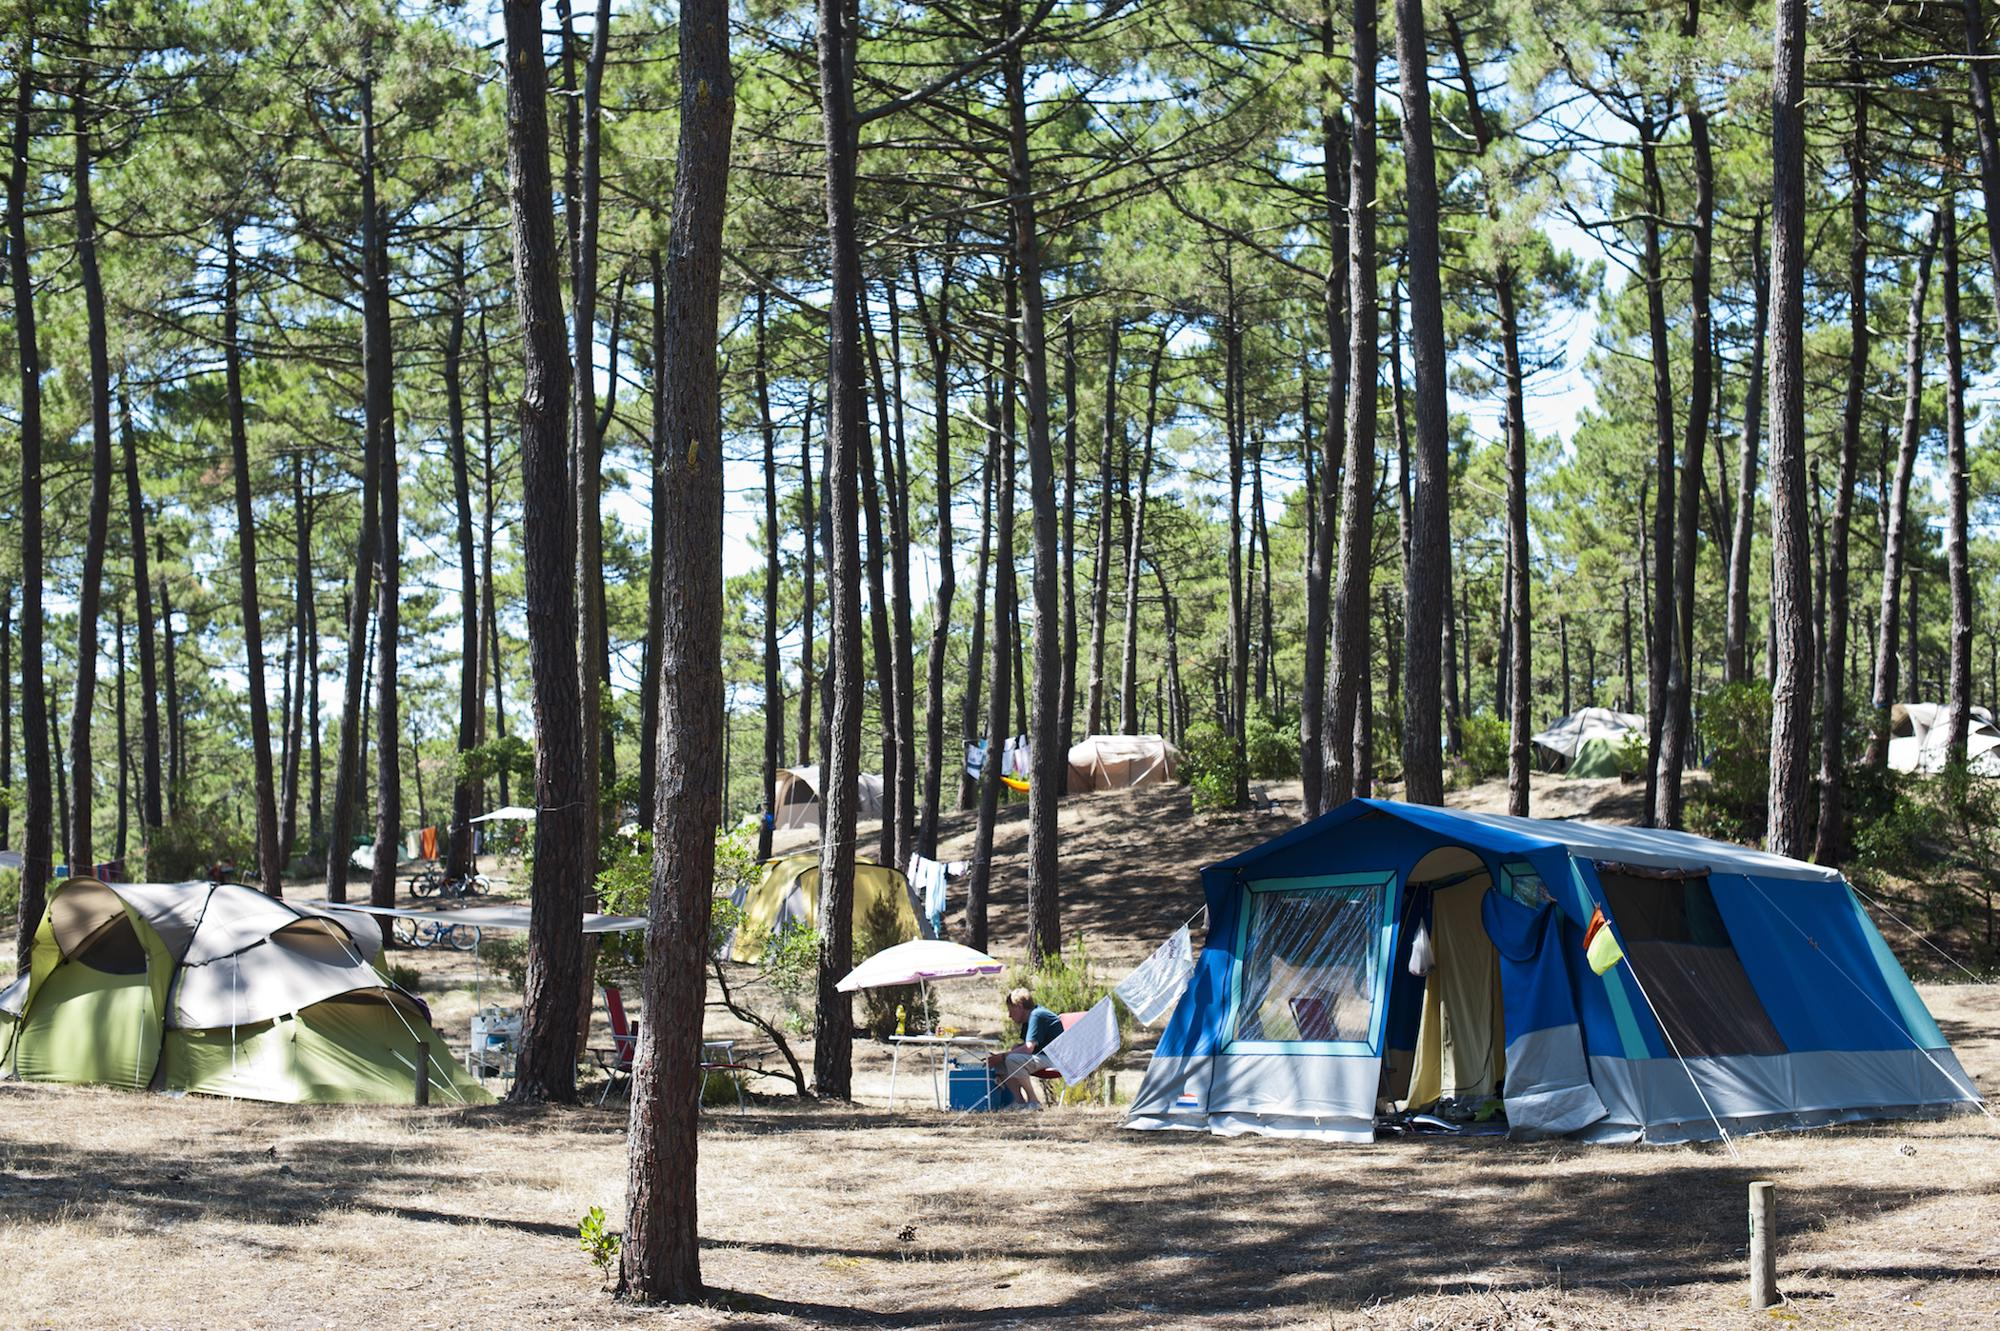 Campsites in Gironde holidays at Glampingly